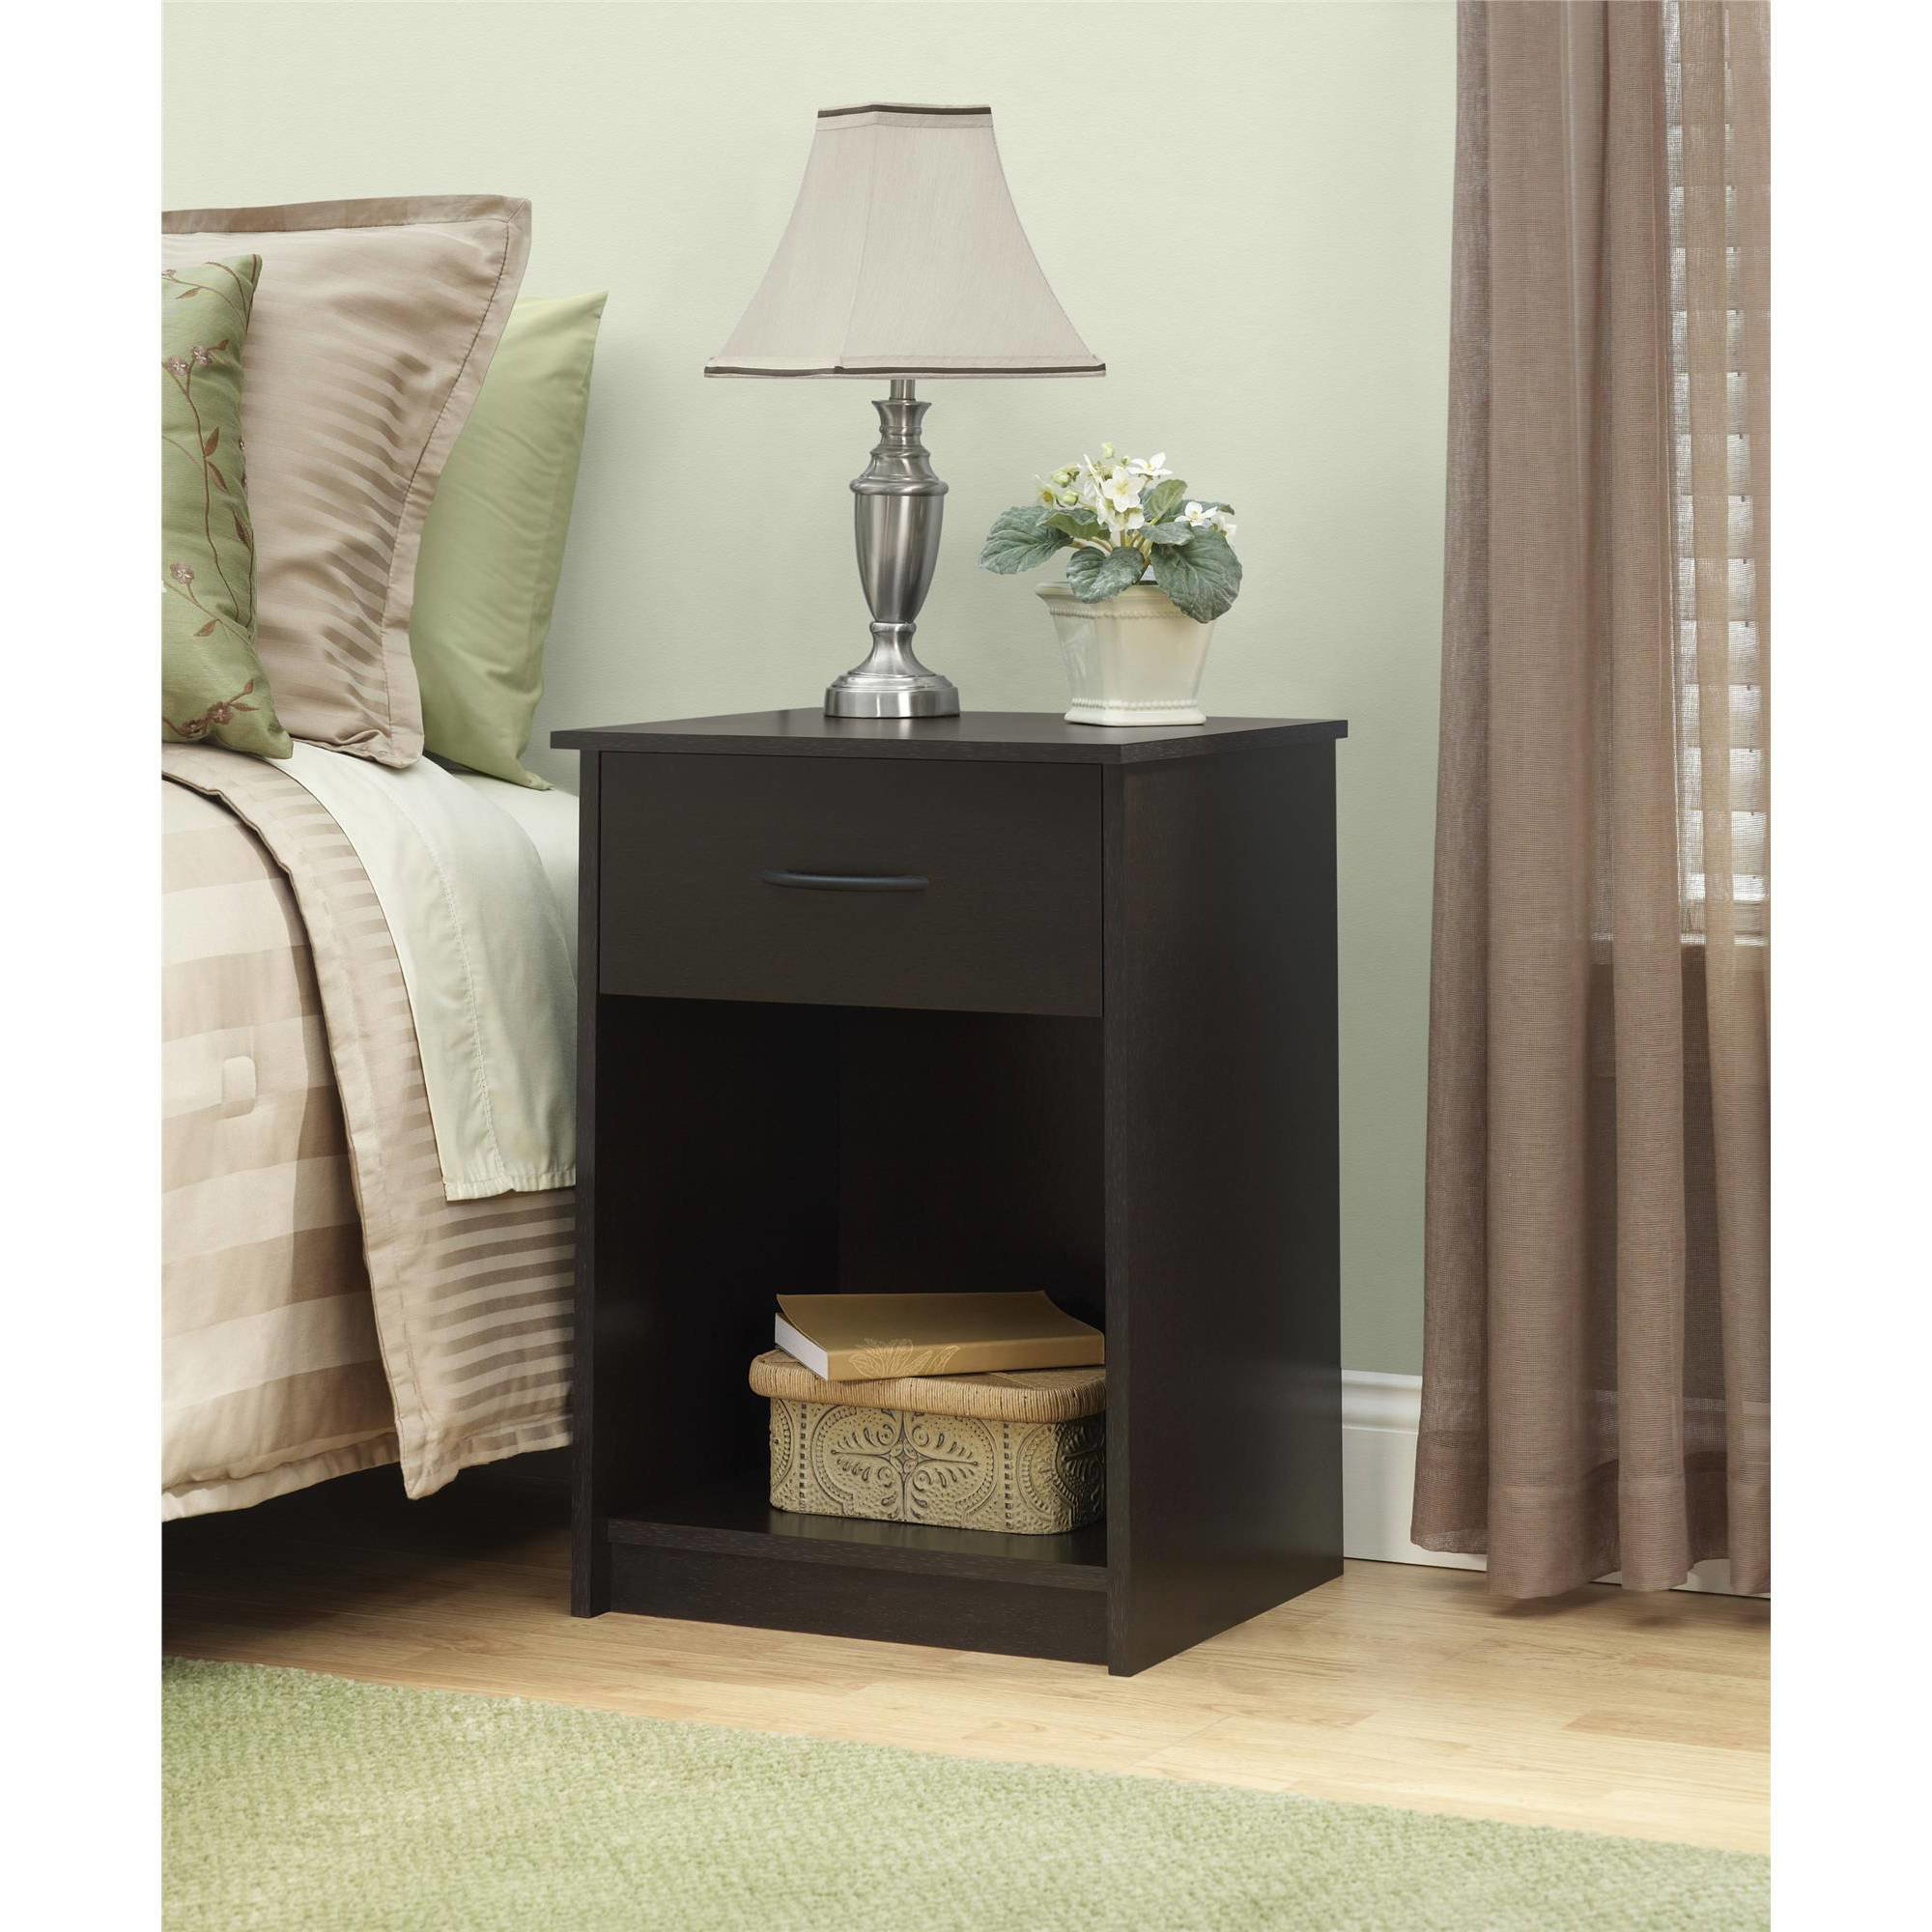 Best Nightstand Night Stand End Table 1 Drawer Furniture Bedroom Bedside Wood Brown Ebay With Pictures